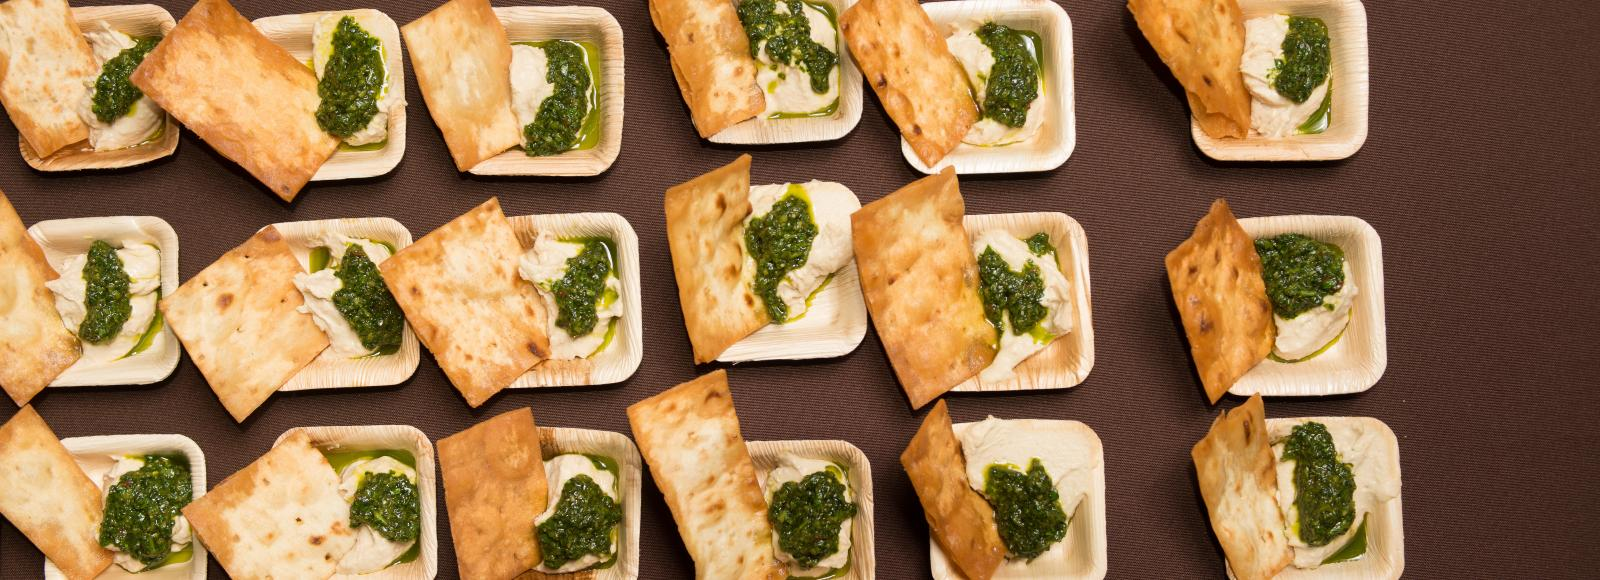 food samples in little trays with hummus, cilantro sauce and a cracker